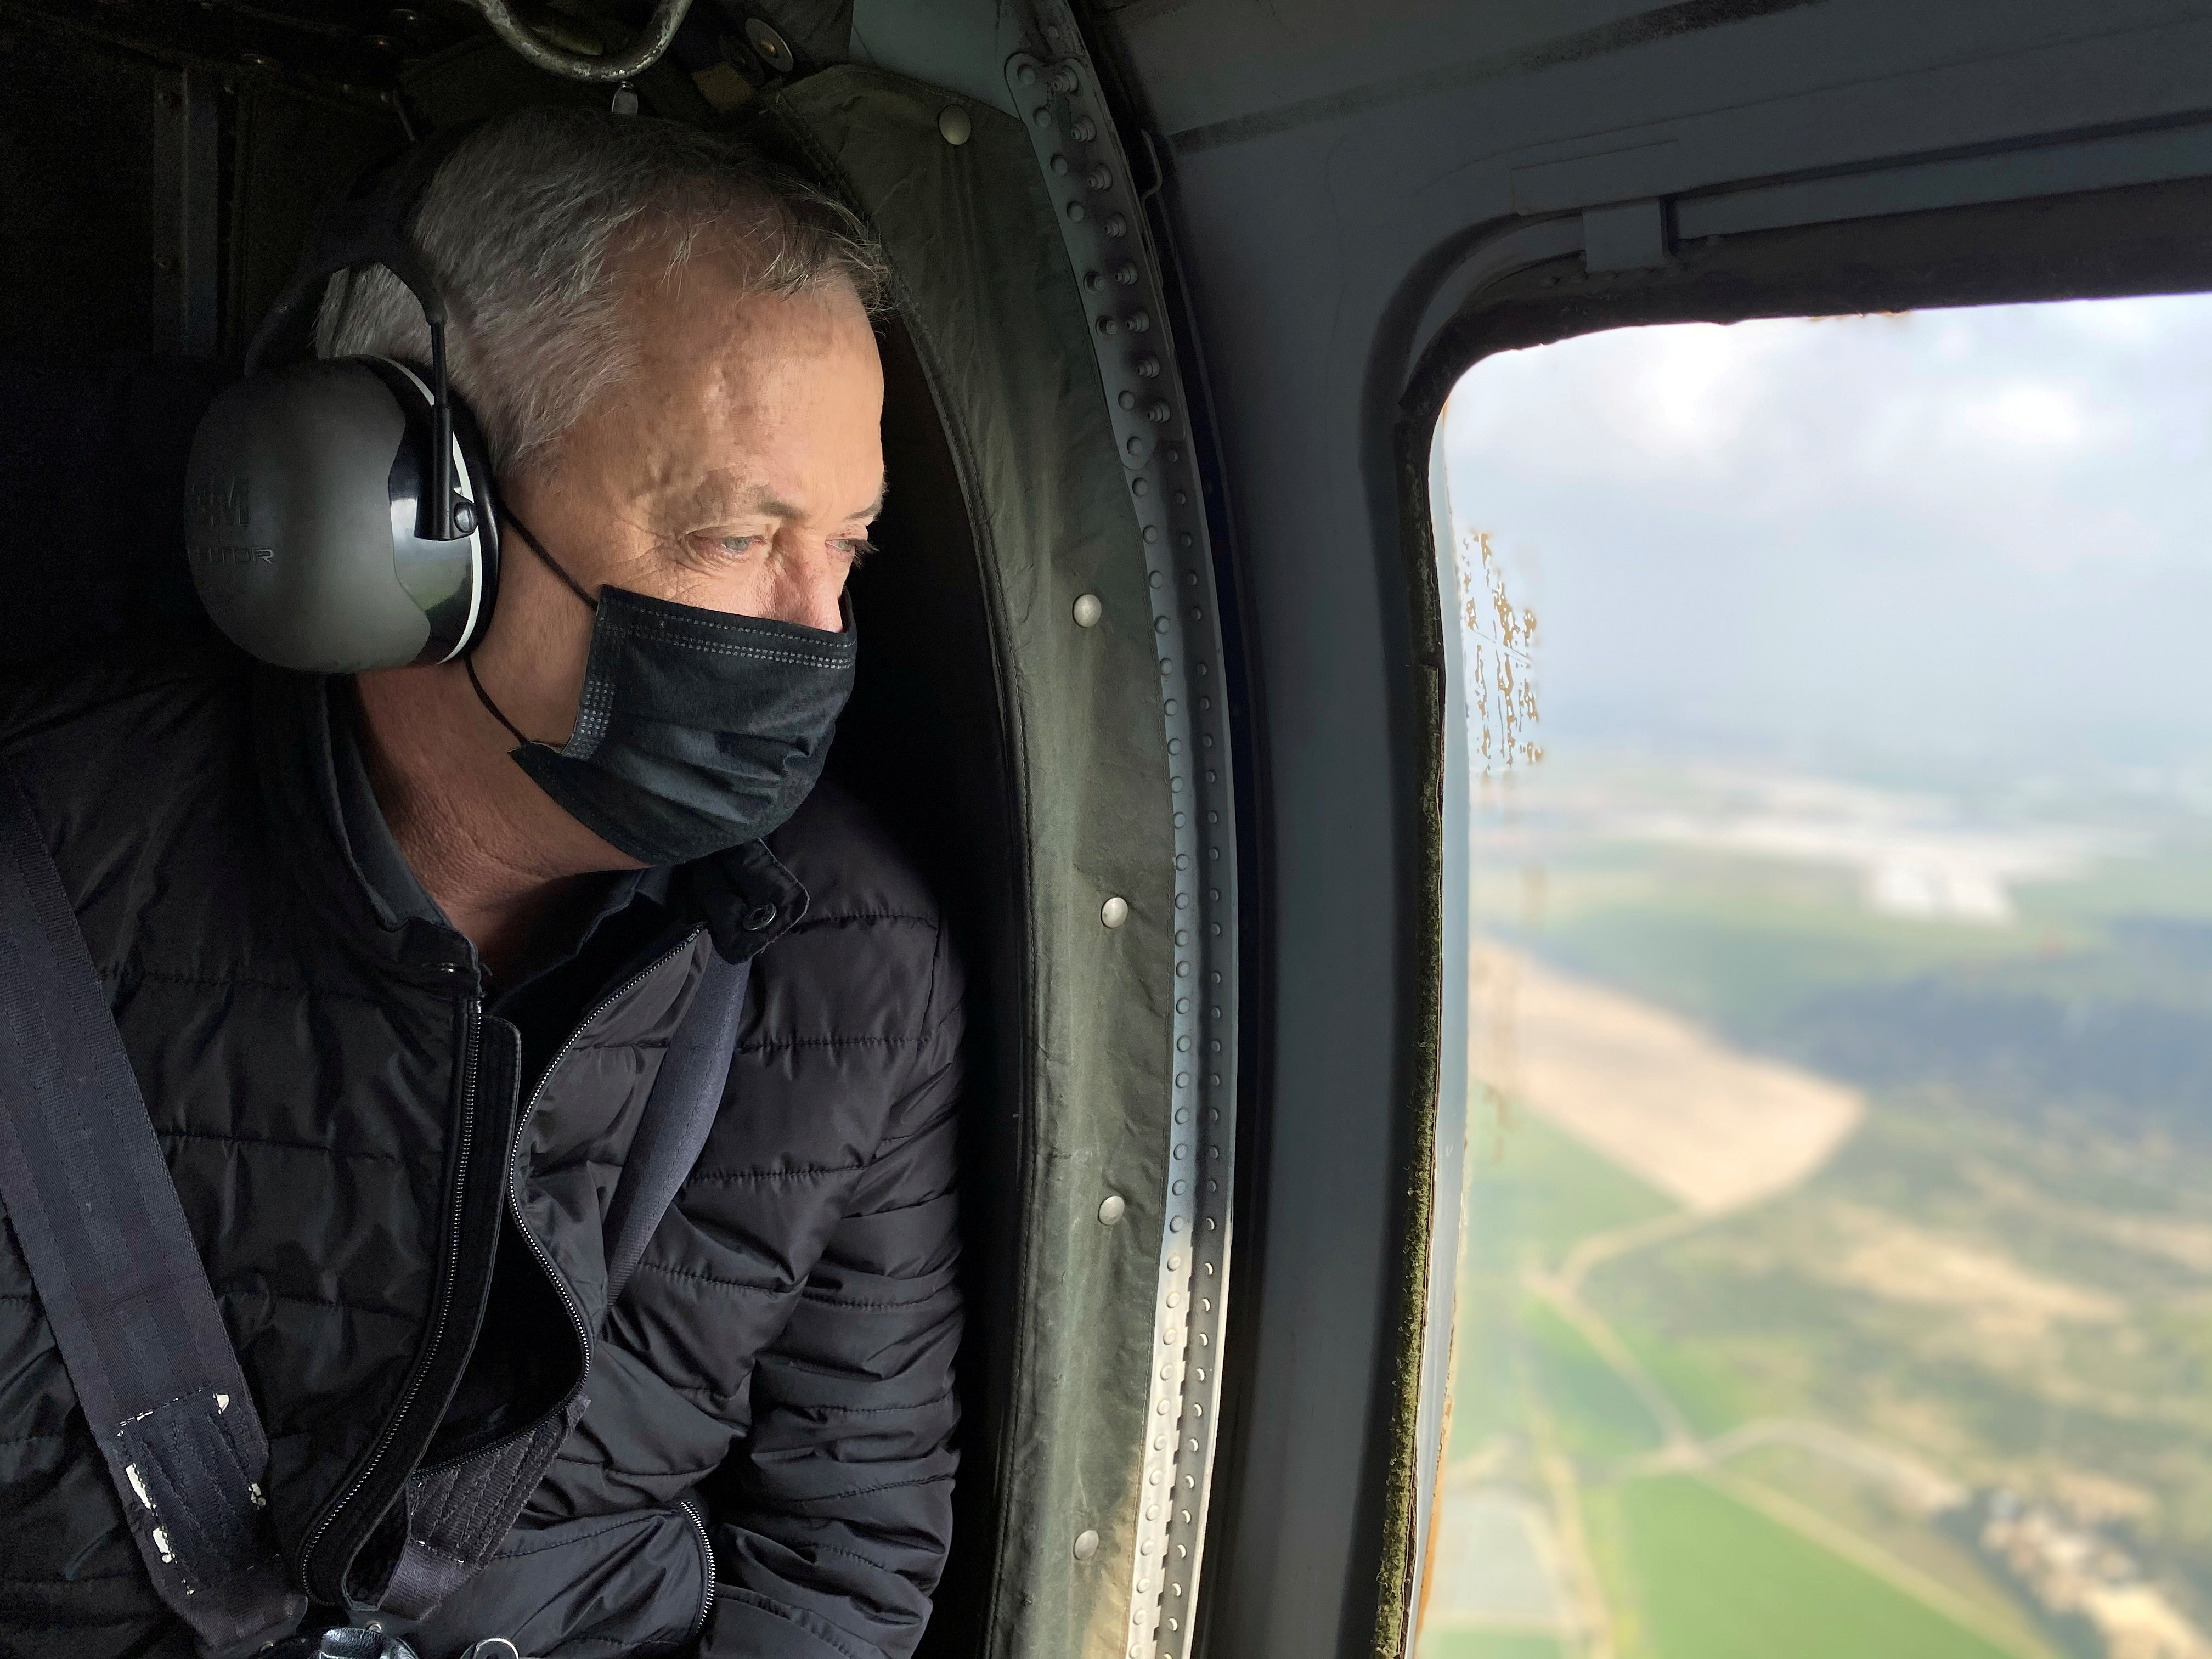 Israeli Defence Minister Benny Gantz wears a face mask as he looks out from the window of a helicopter during a tour of the Gaza border area, southern Israel, March 2, 2021. REUTERS/Dan Williams/File Photo